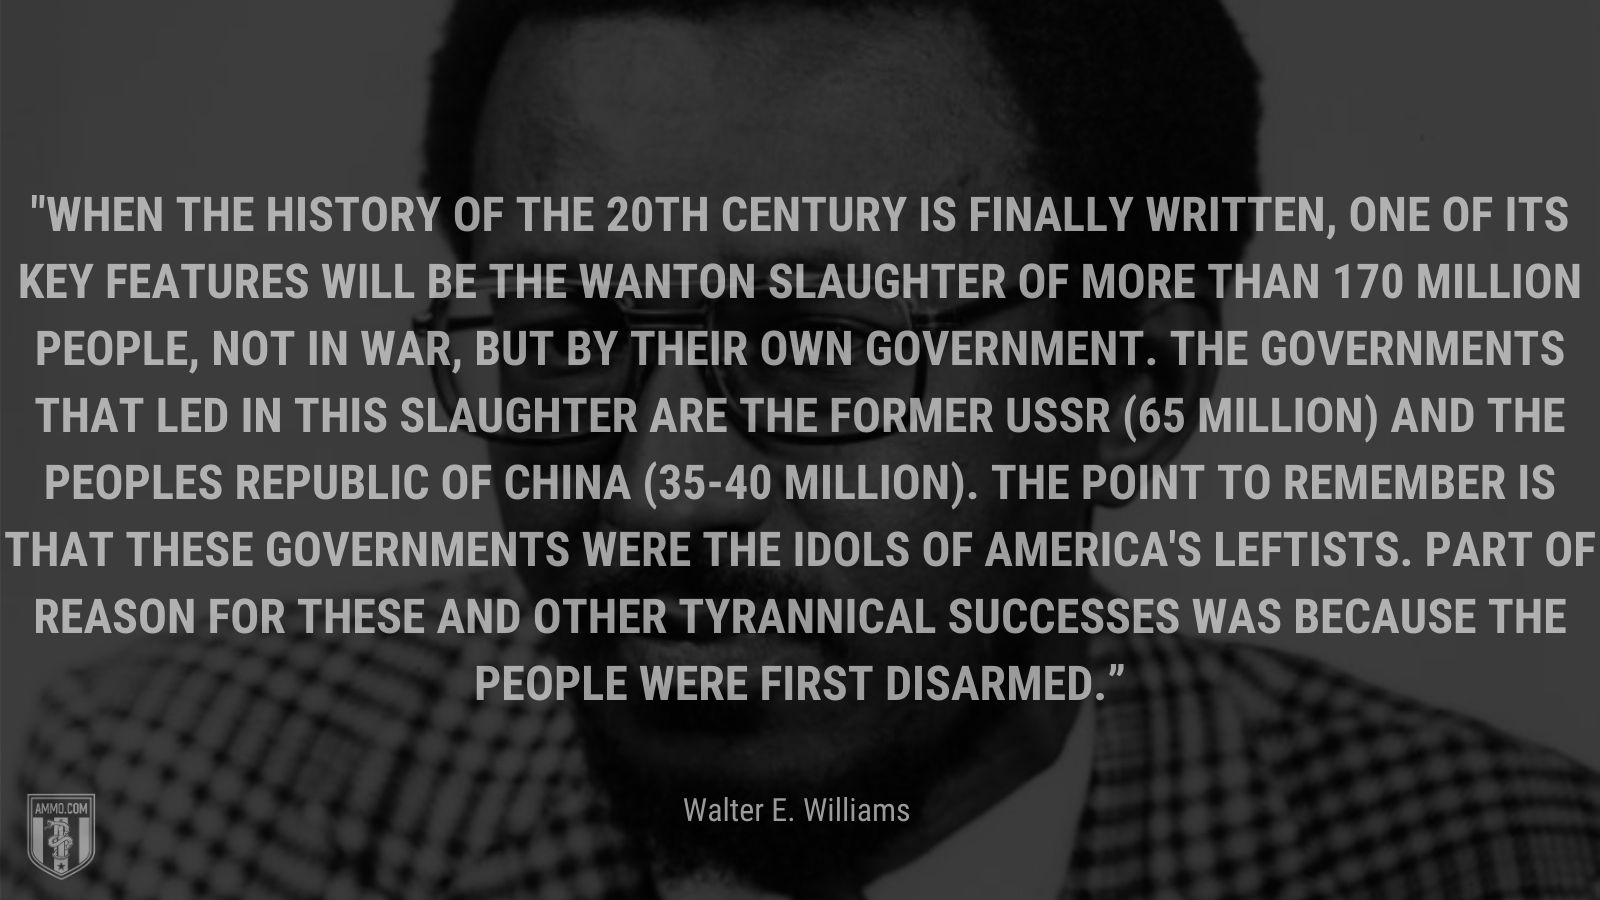 """""""When the history of the 20th century is finally written, one of its key features will be the wanton slaughter of more than 170 million people, not in war, but by their own government. The governments that led in this slaughter are the former USSR (65 million) and the Peoples Republic of China (35-40 million). The point to remember is that these governments were the idols of America's leftists. Part of reason for these and other tyrannical successes was because the people were first disarmed."""" - Walter E. Williams"""